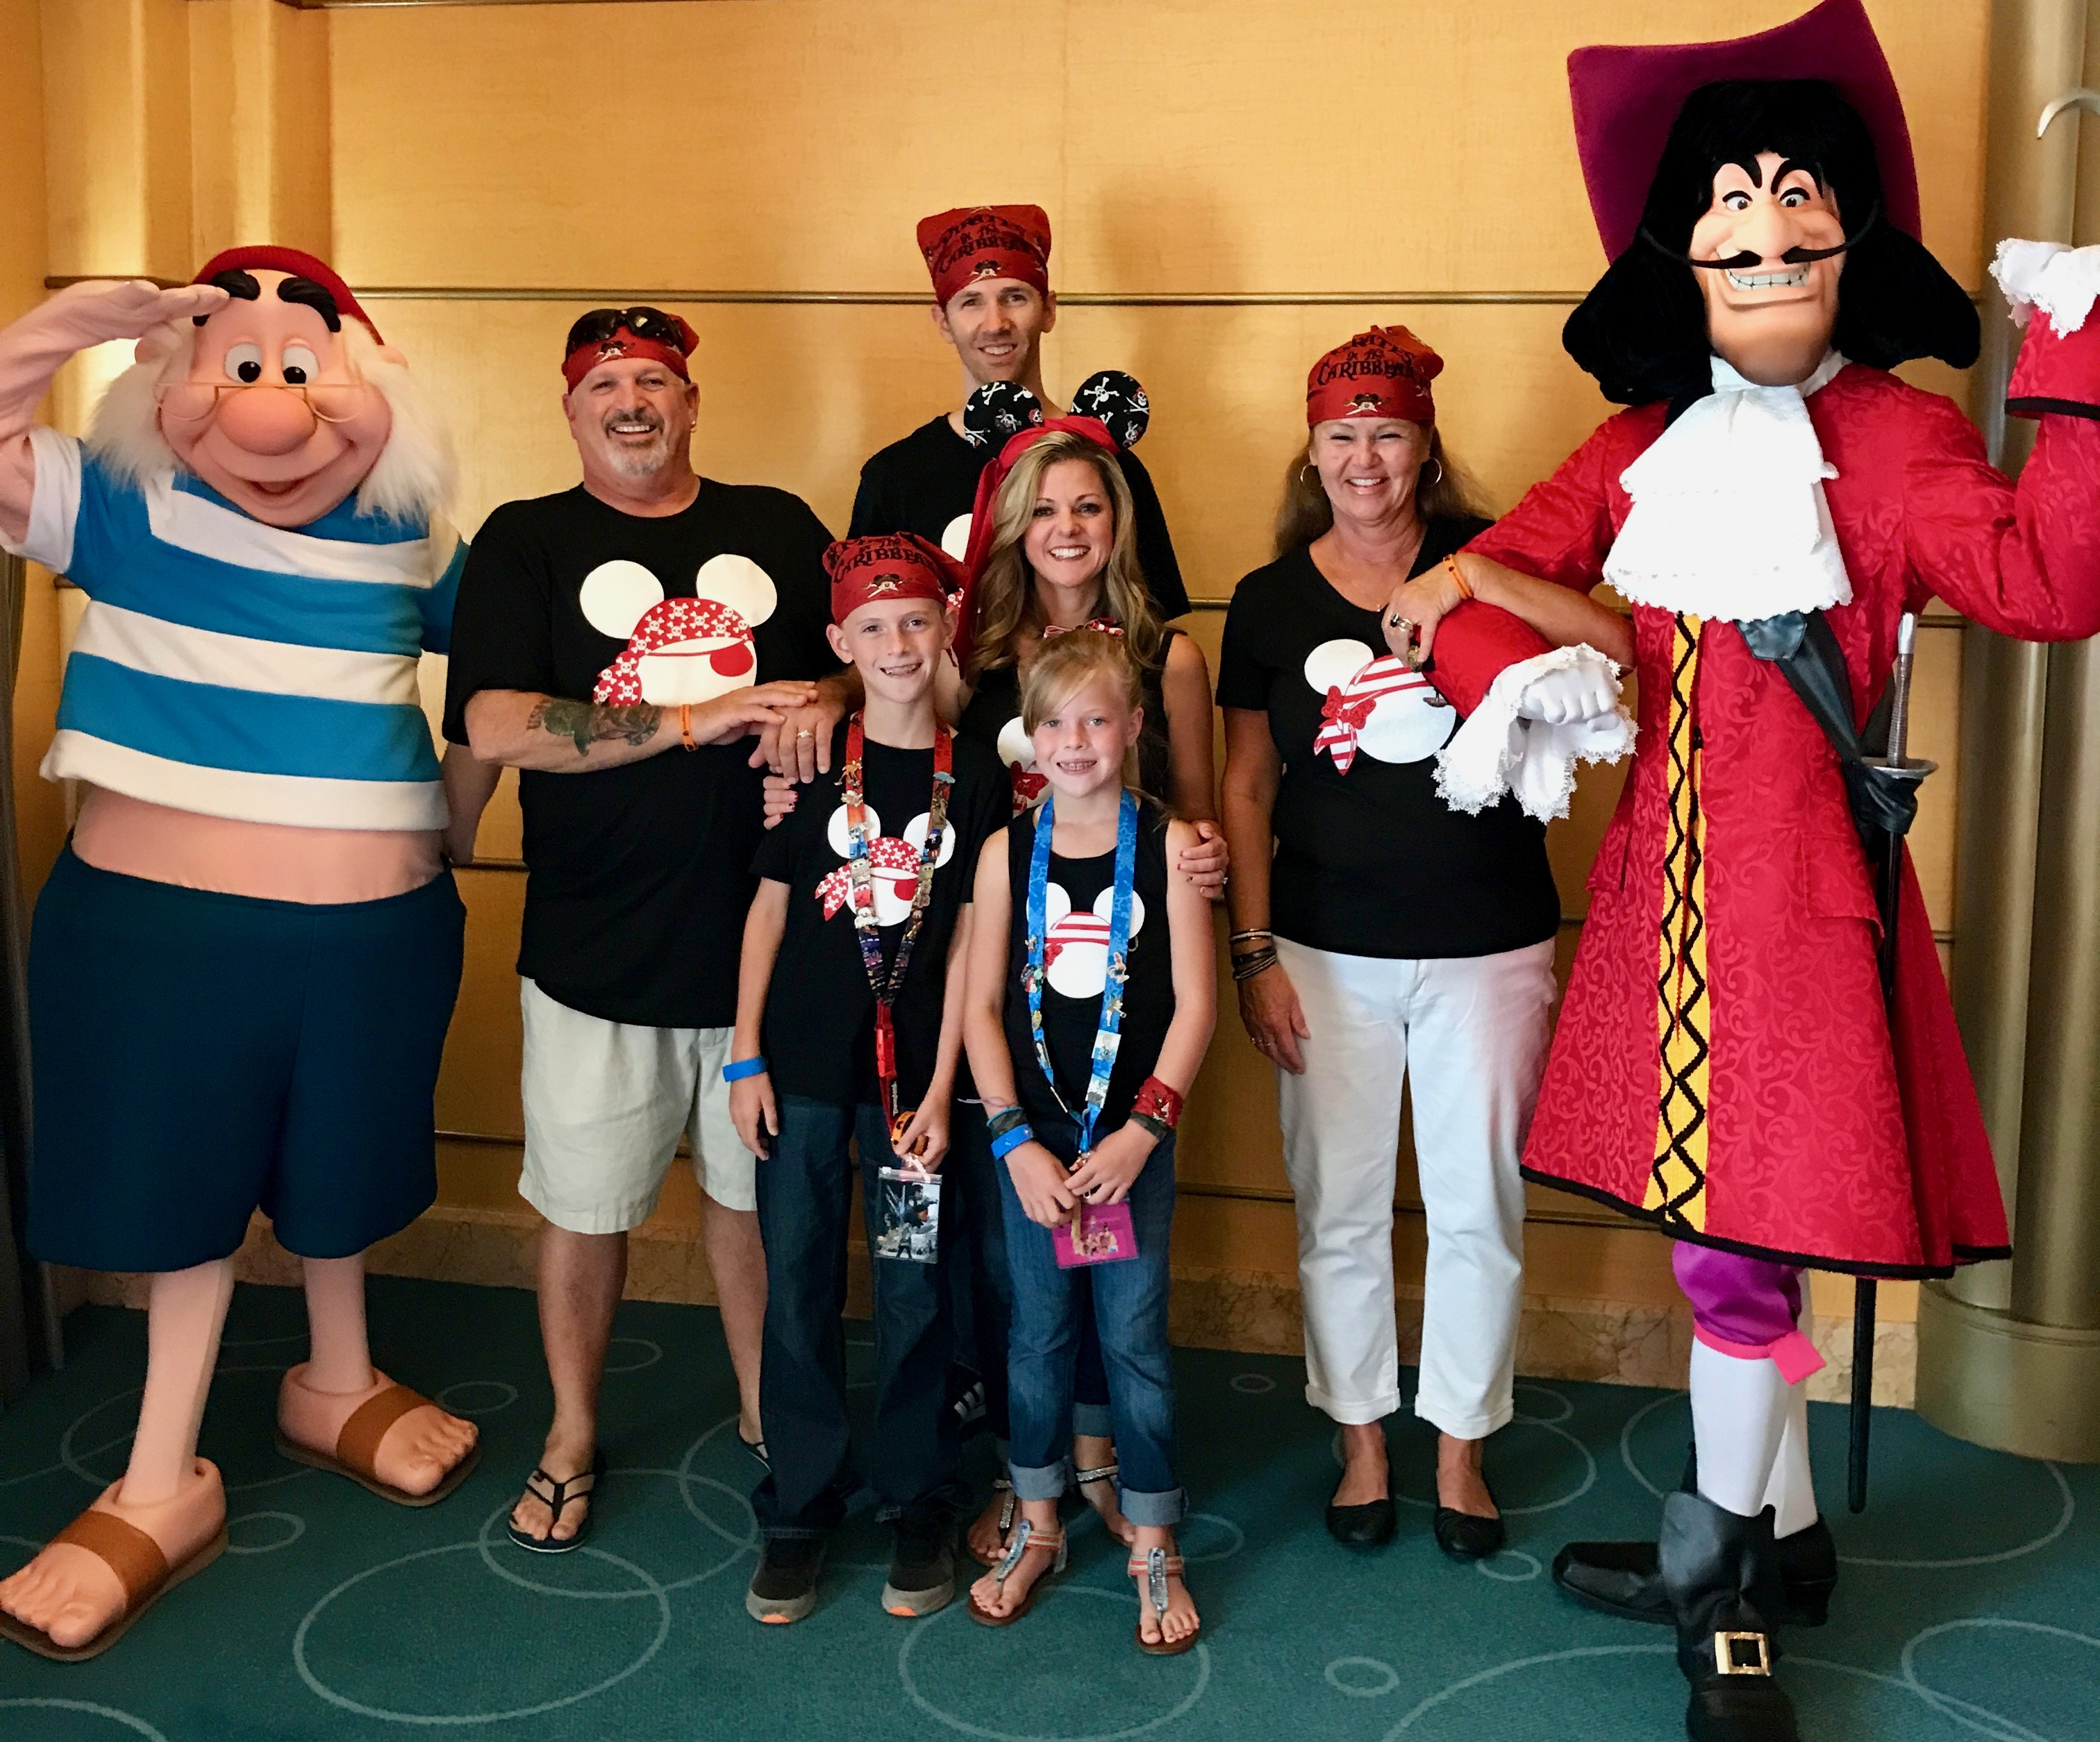 Top 5 Items to Pack for your Disney Cruise